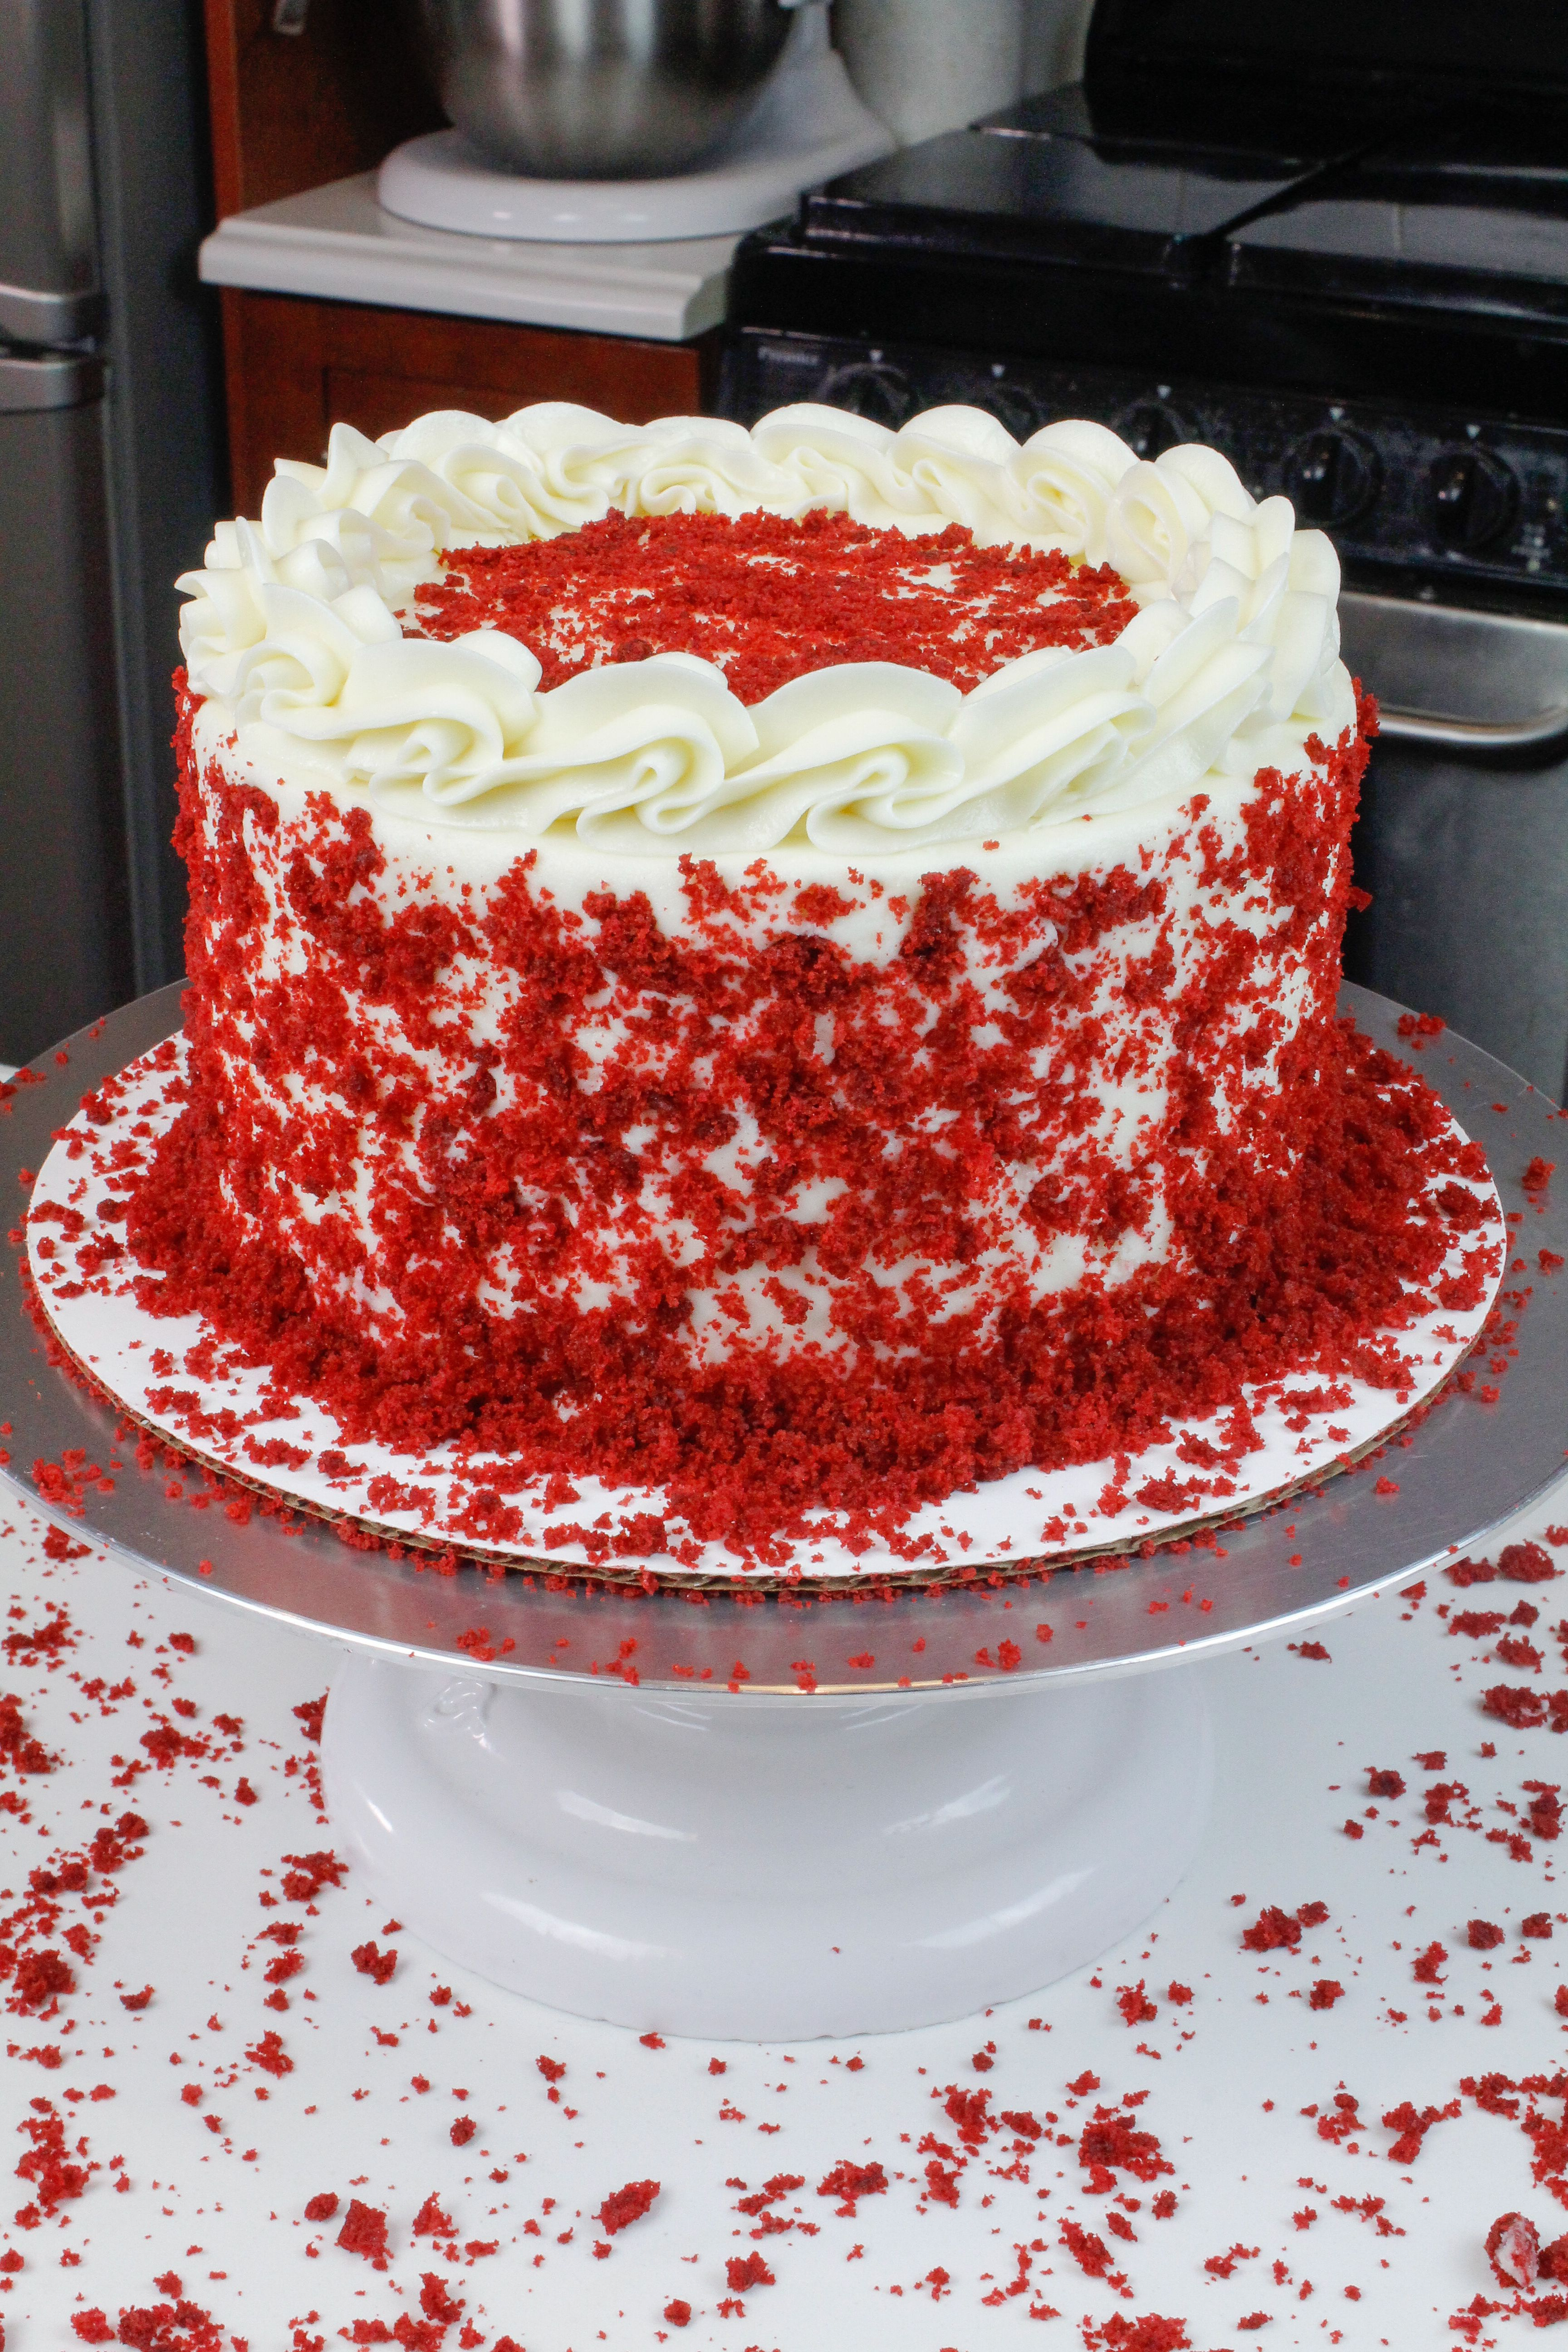 Red Velvet Layer Cake With Cream Cheese Frosting Recipe Velvet Cake Recipes Red Velvet Cake Recipe Cake With Cream Cheese